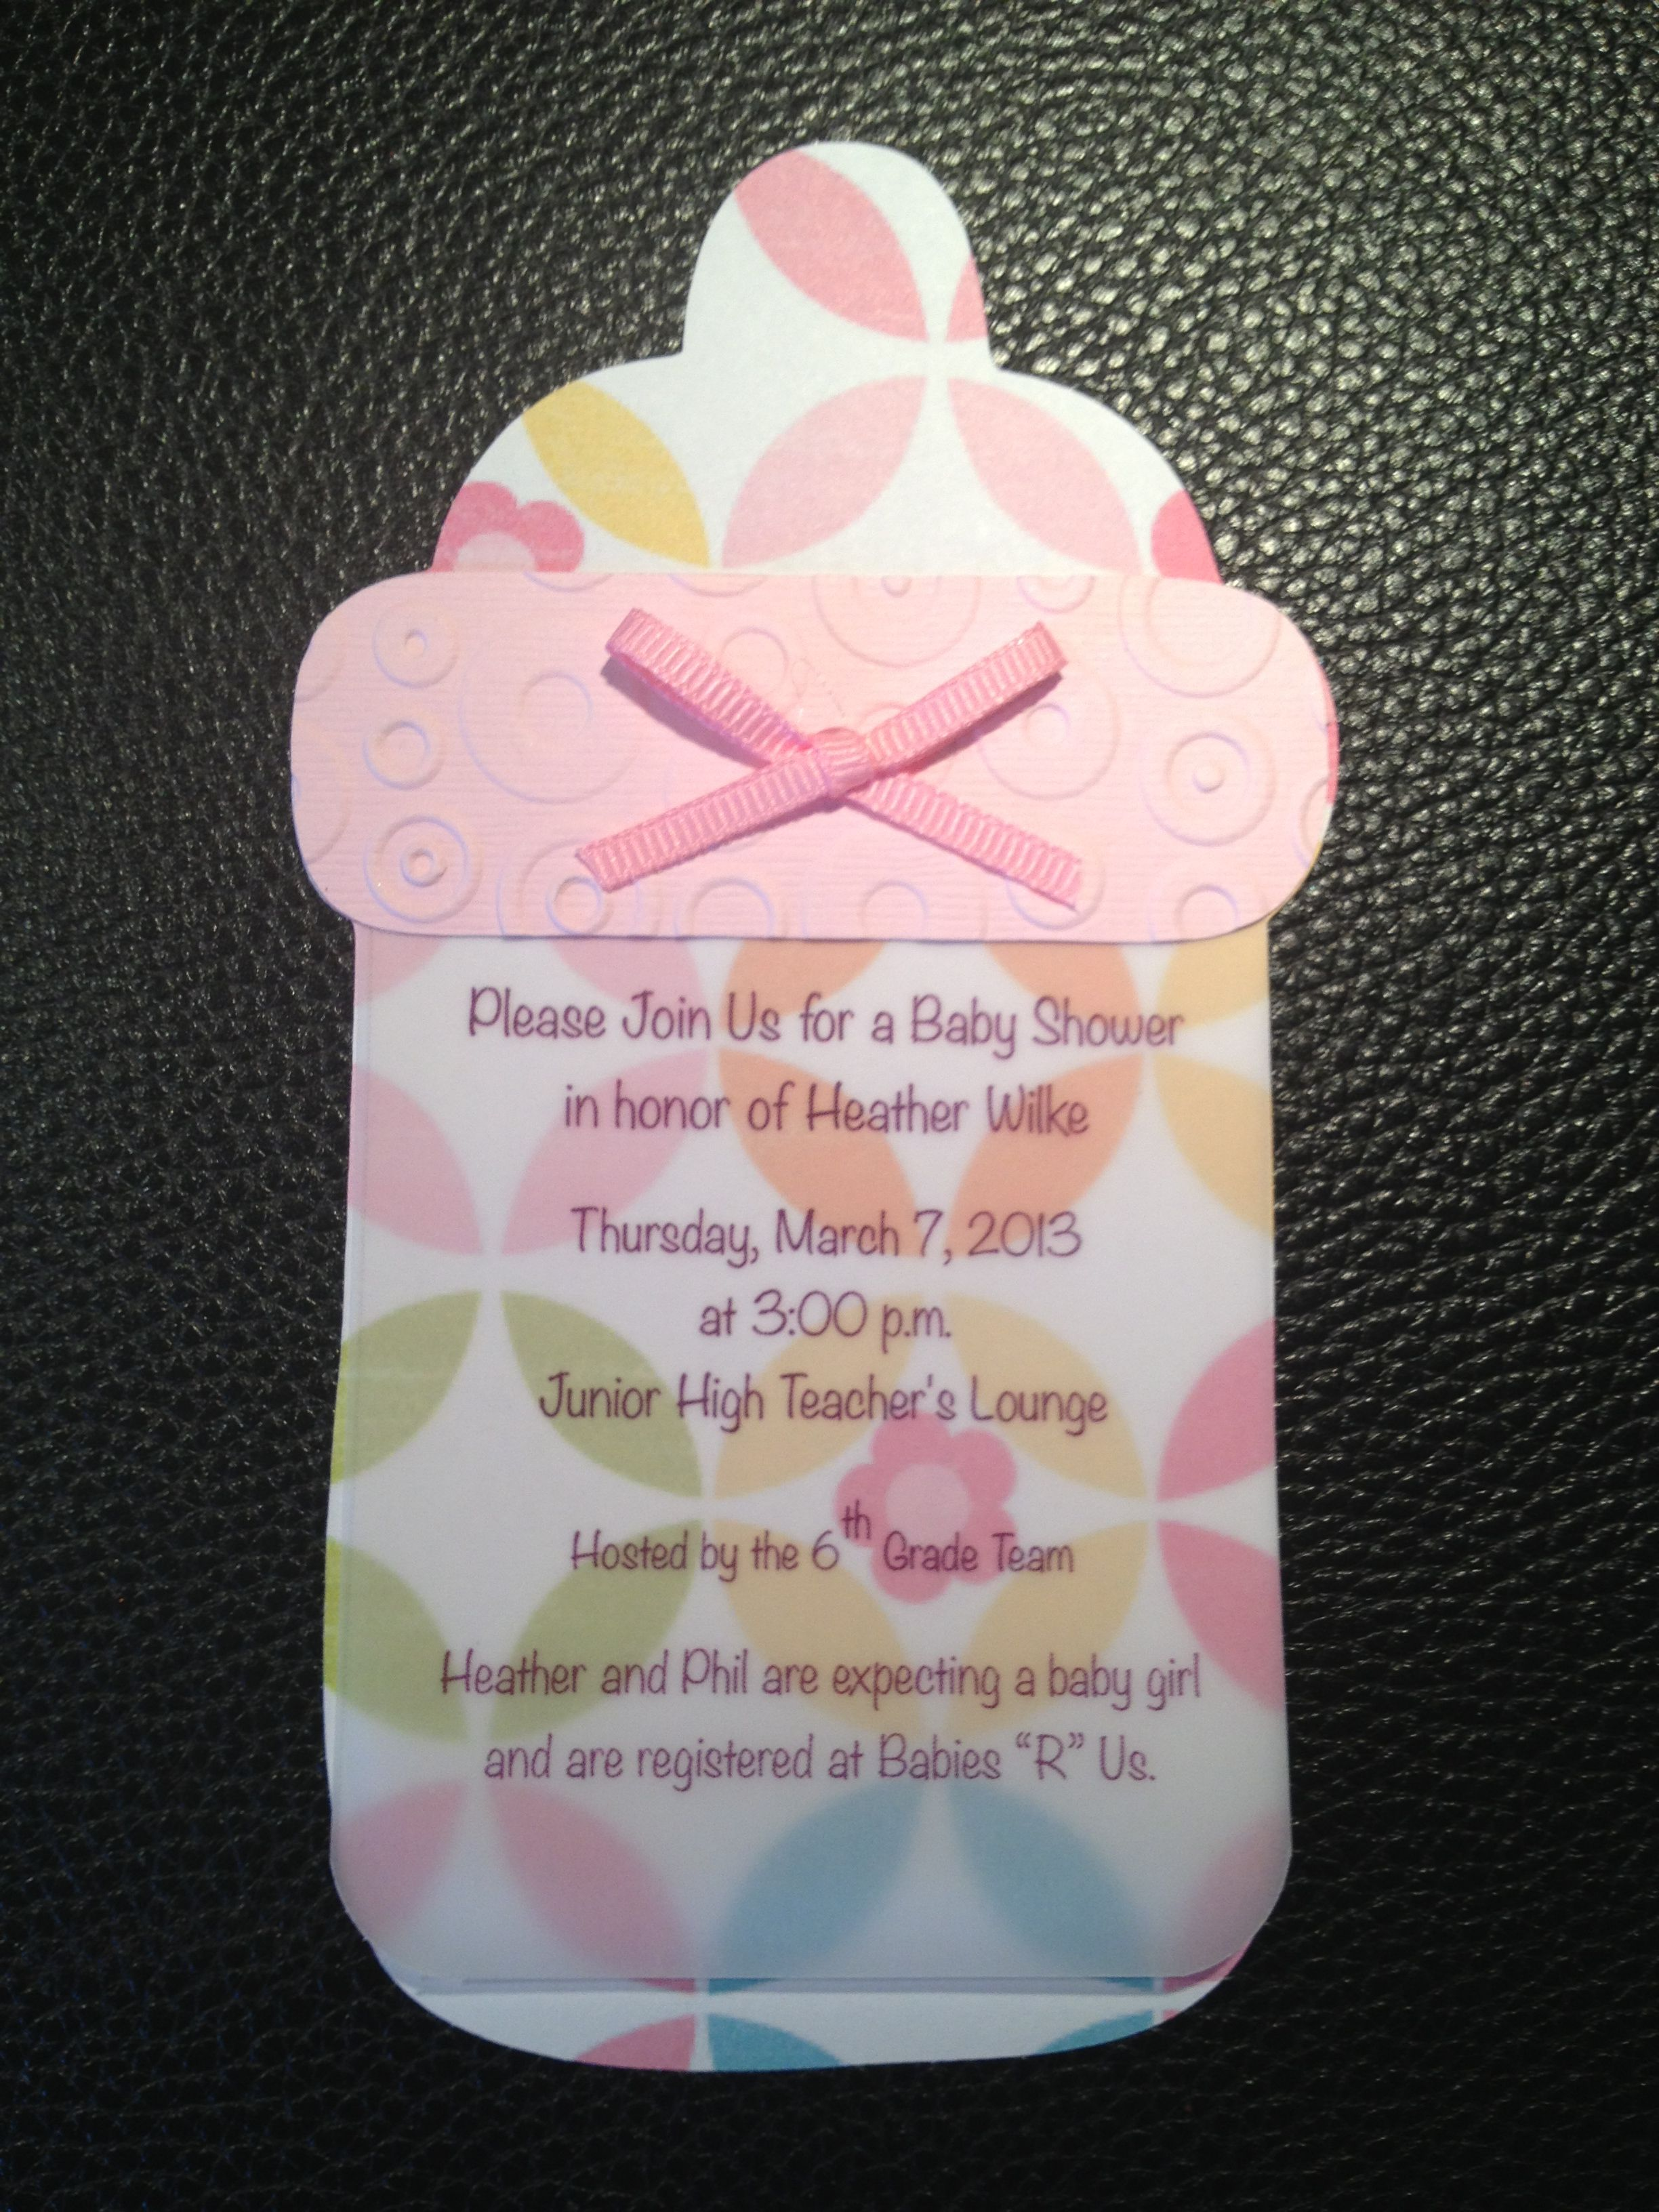 Baby Shower Invitation I Made For A